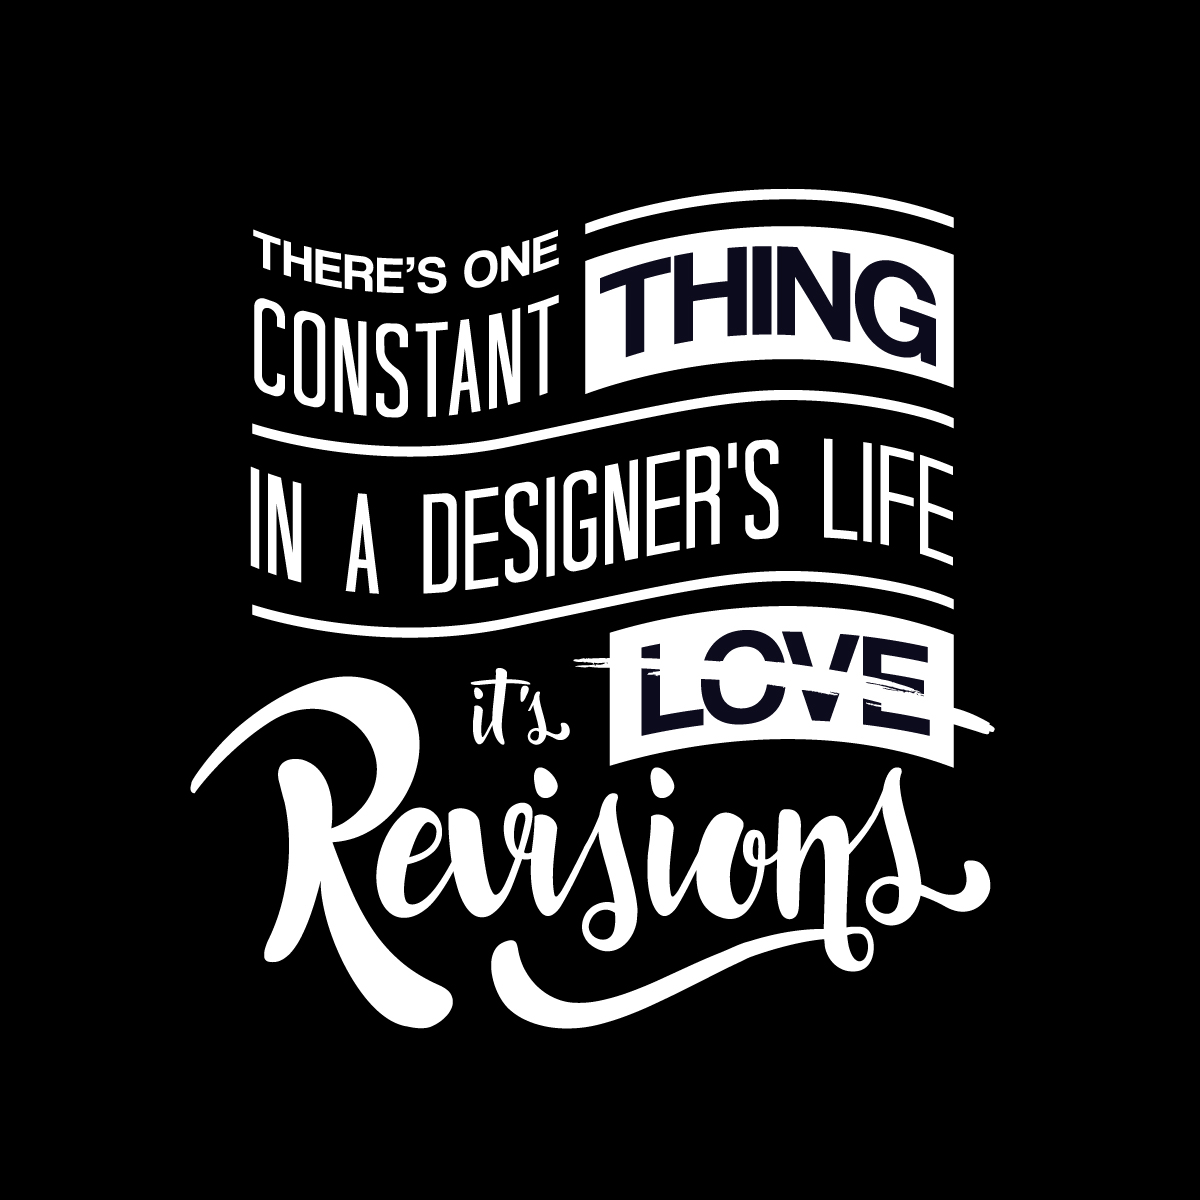 There's one constant thing in a designer's life, it's revisions.